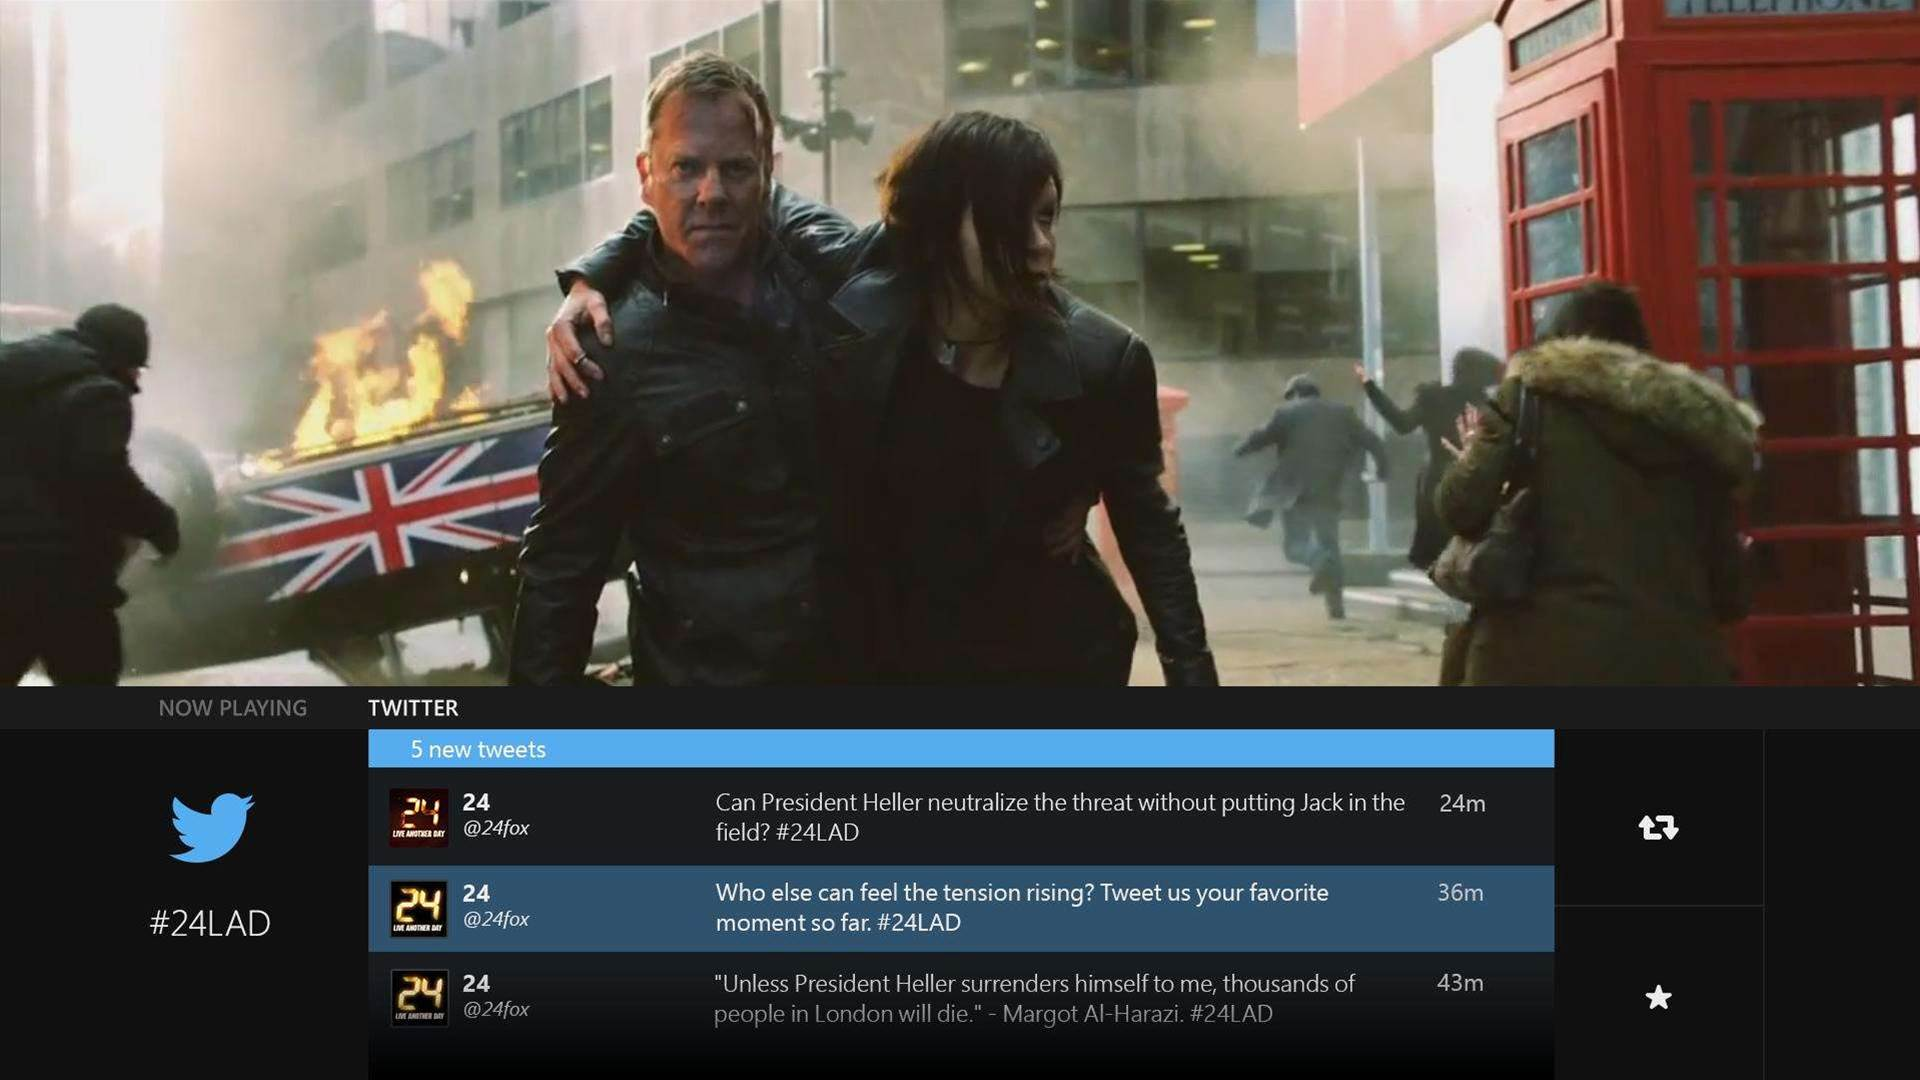 With Xbox One, You'll Never Watch TV Alone